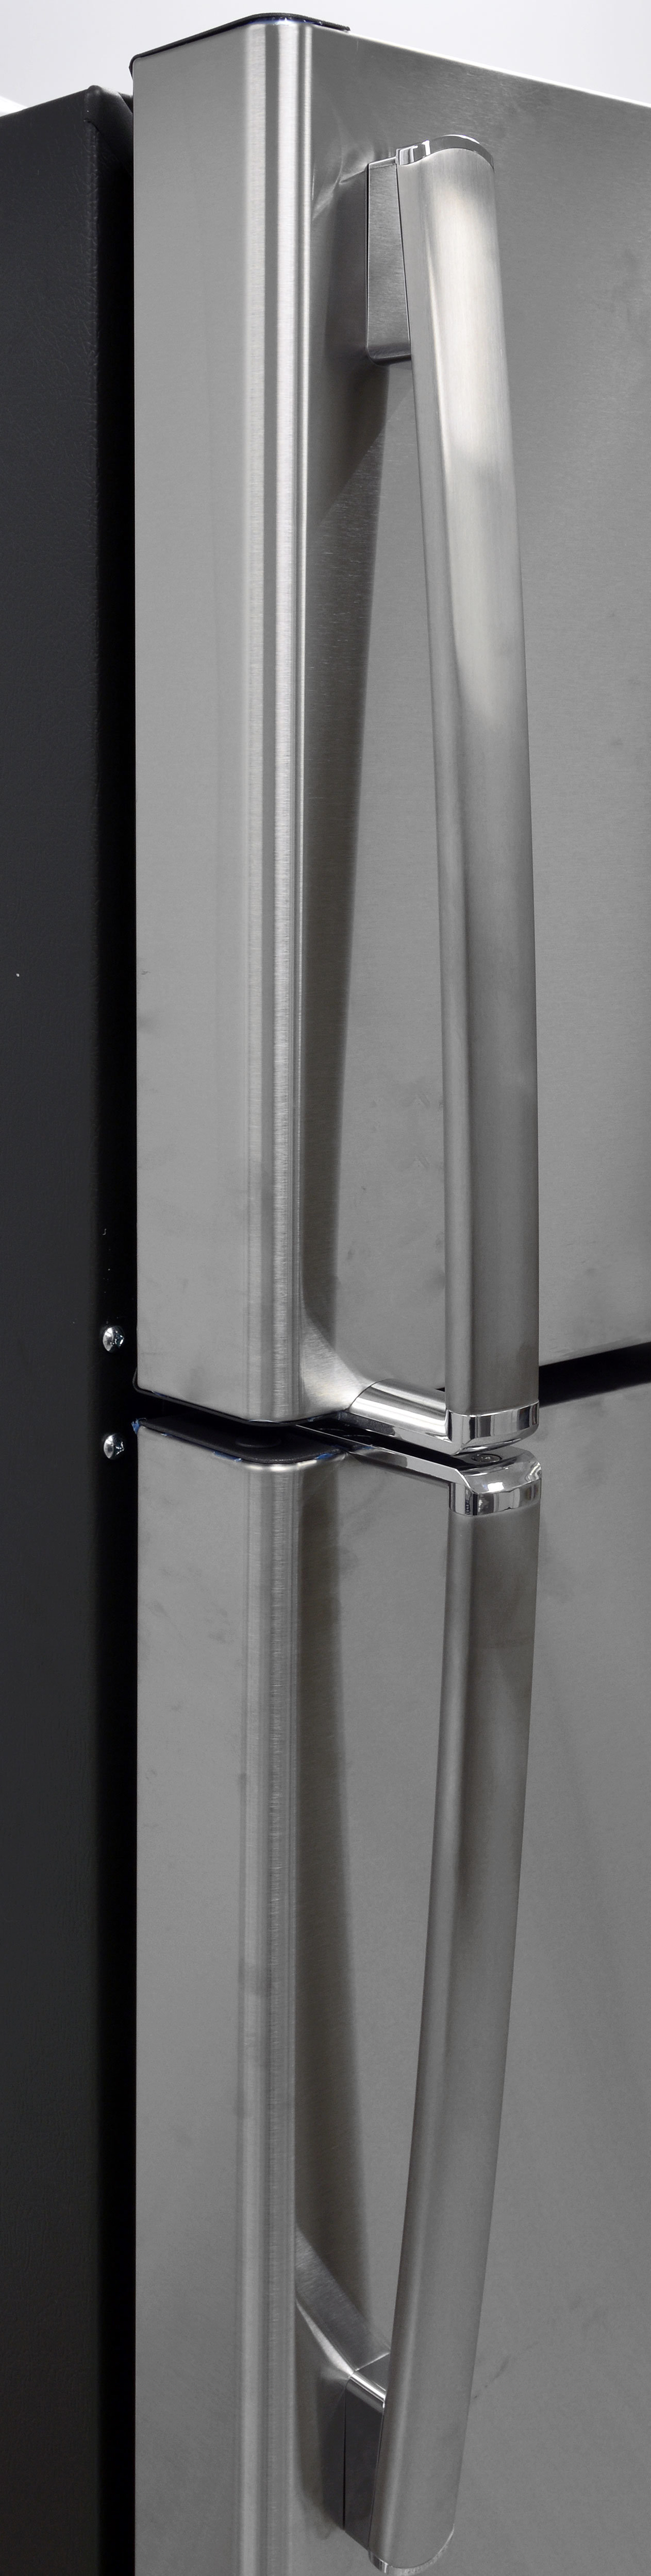 GE's stainless model—the GAS18PSJSS—has handles with silvery trim on the edges.